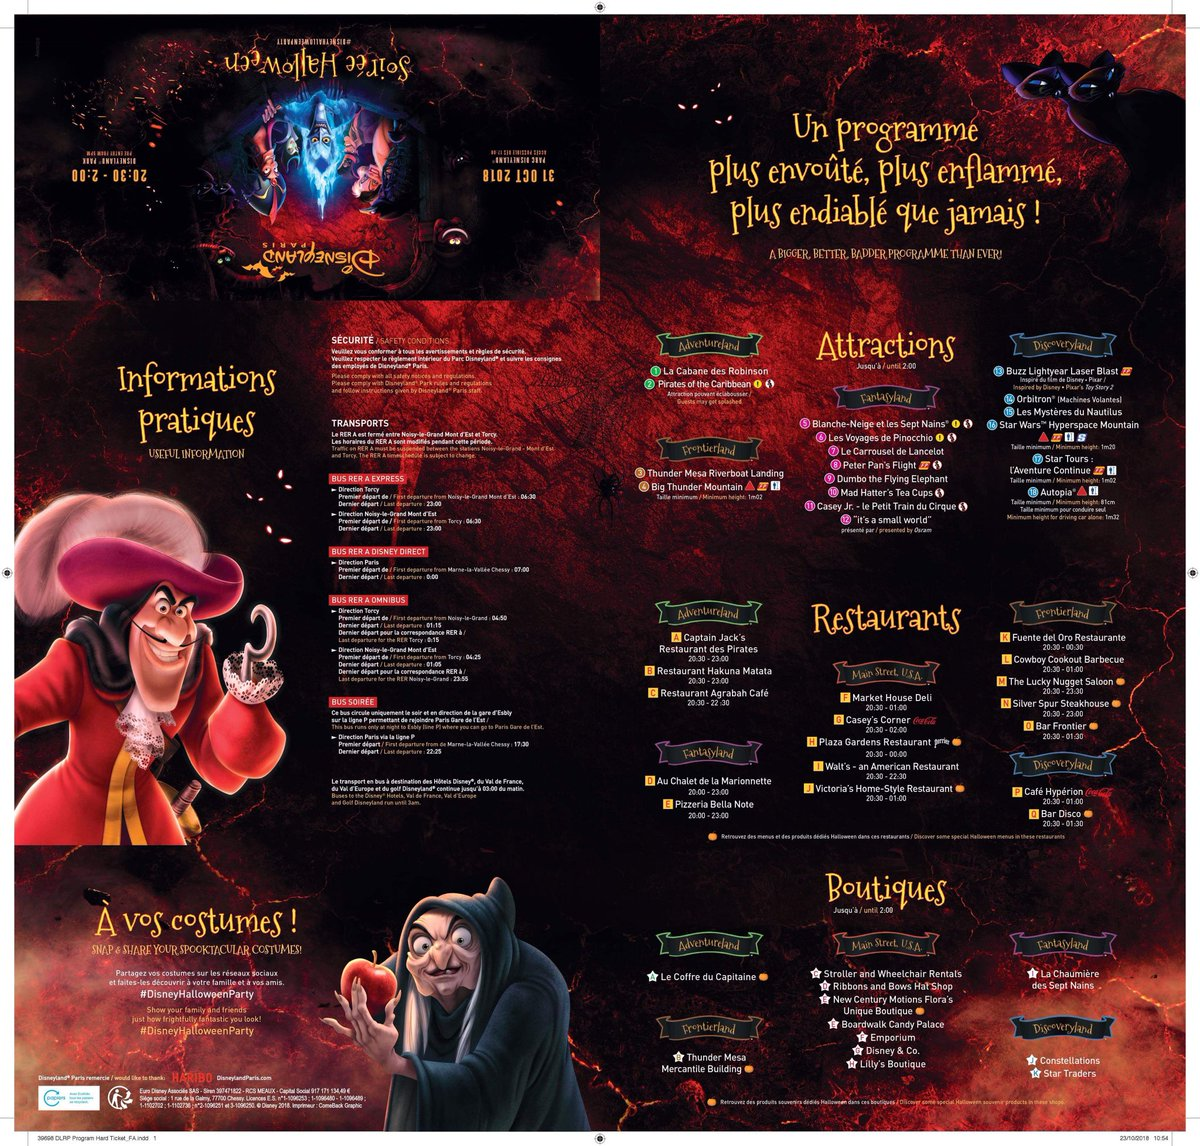 Disneyland Paris Halloween Party 2018.Ed92 On Twitter Official Programme For The 2018